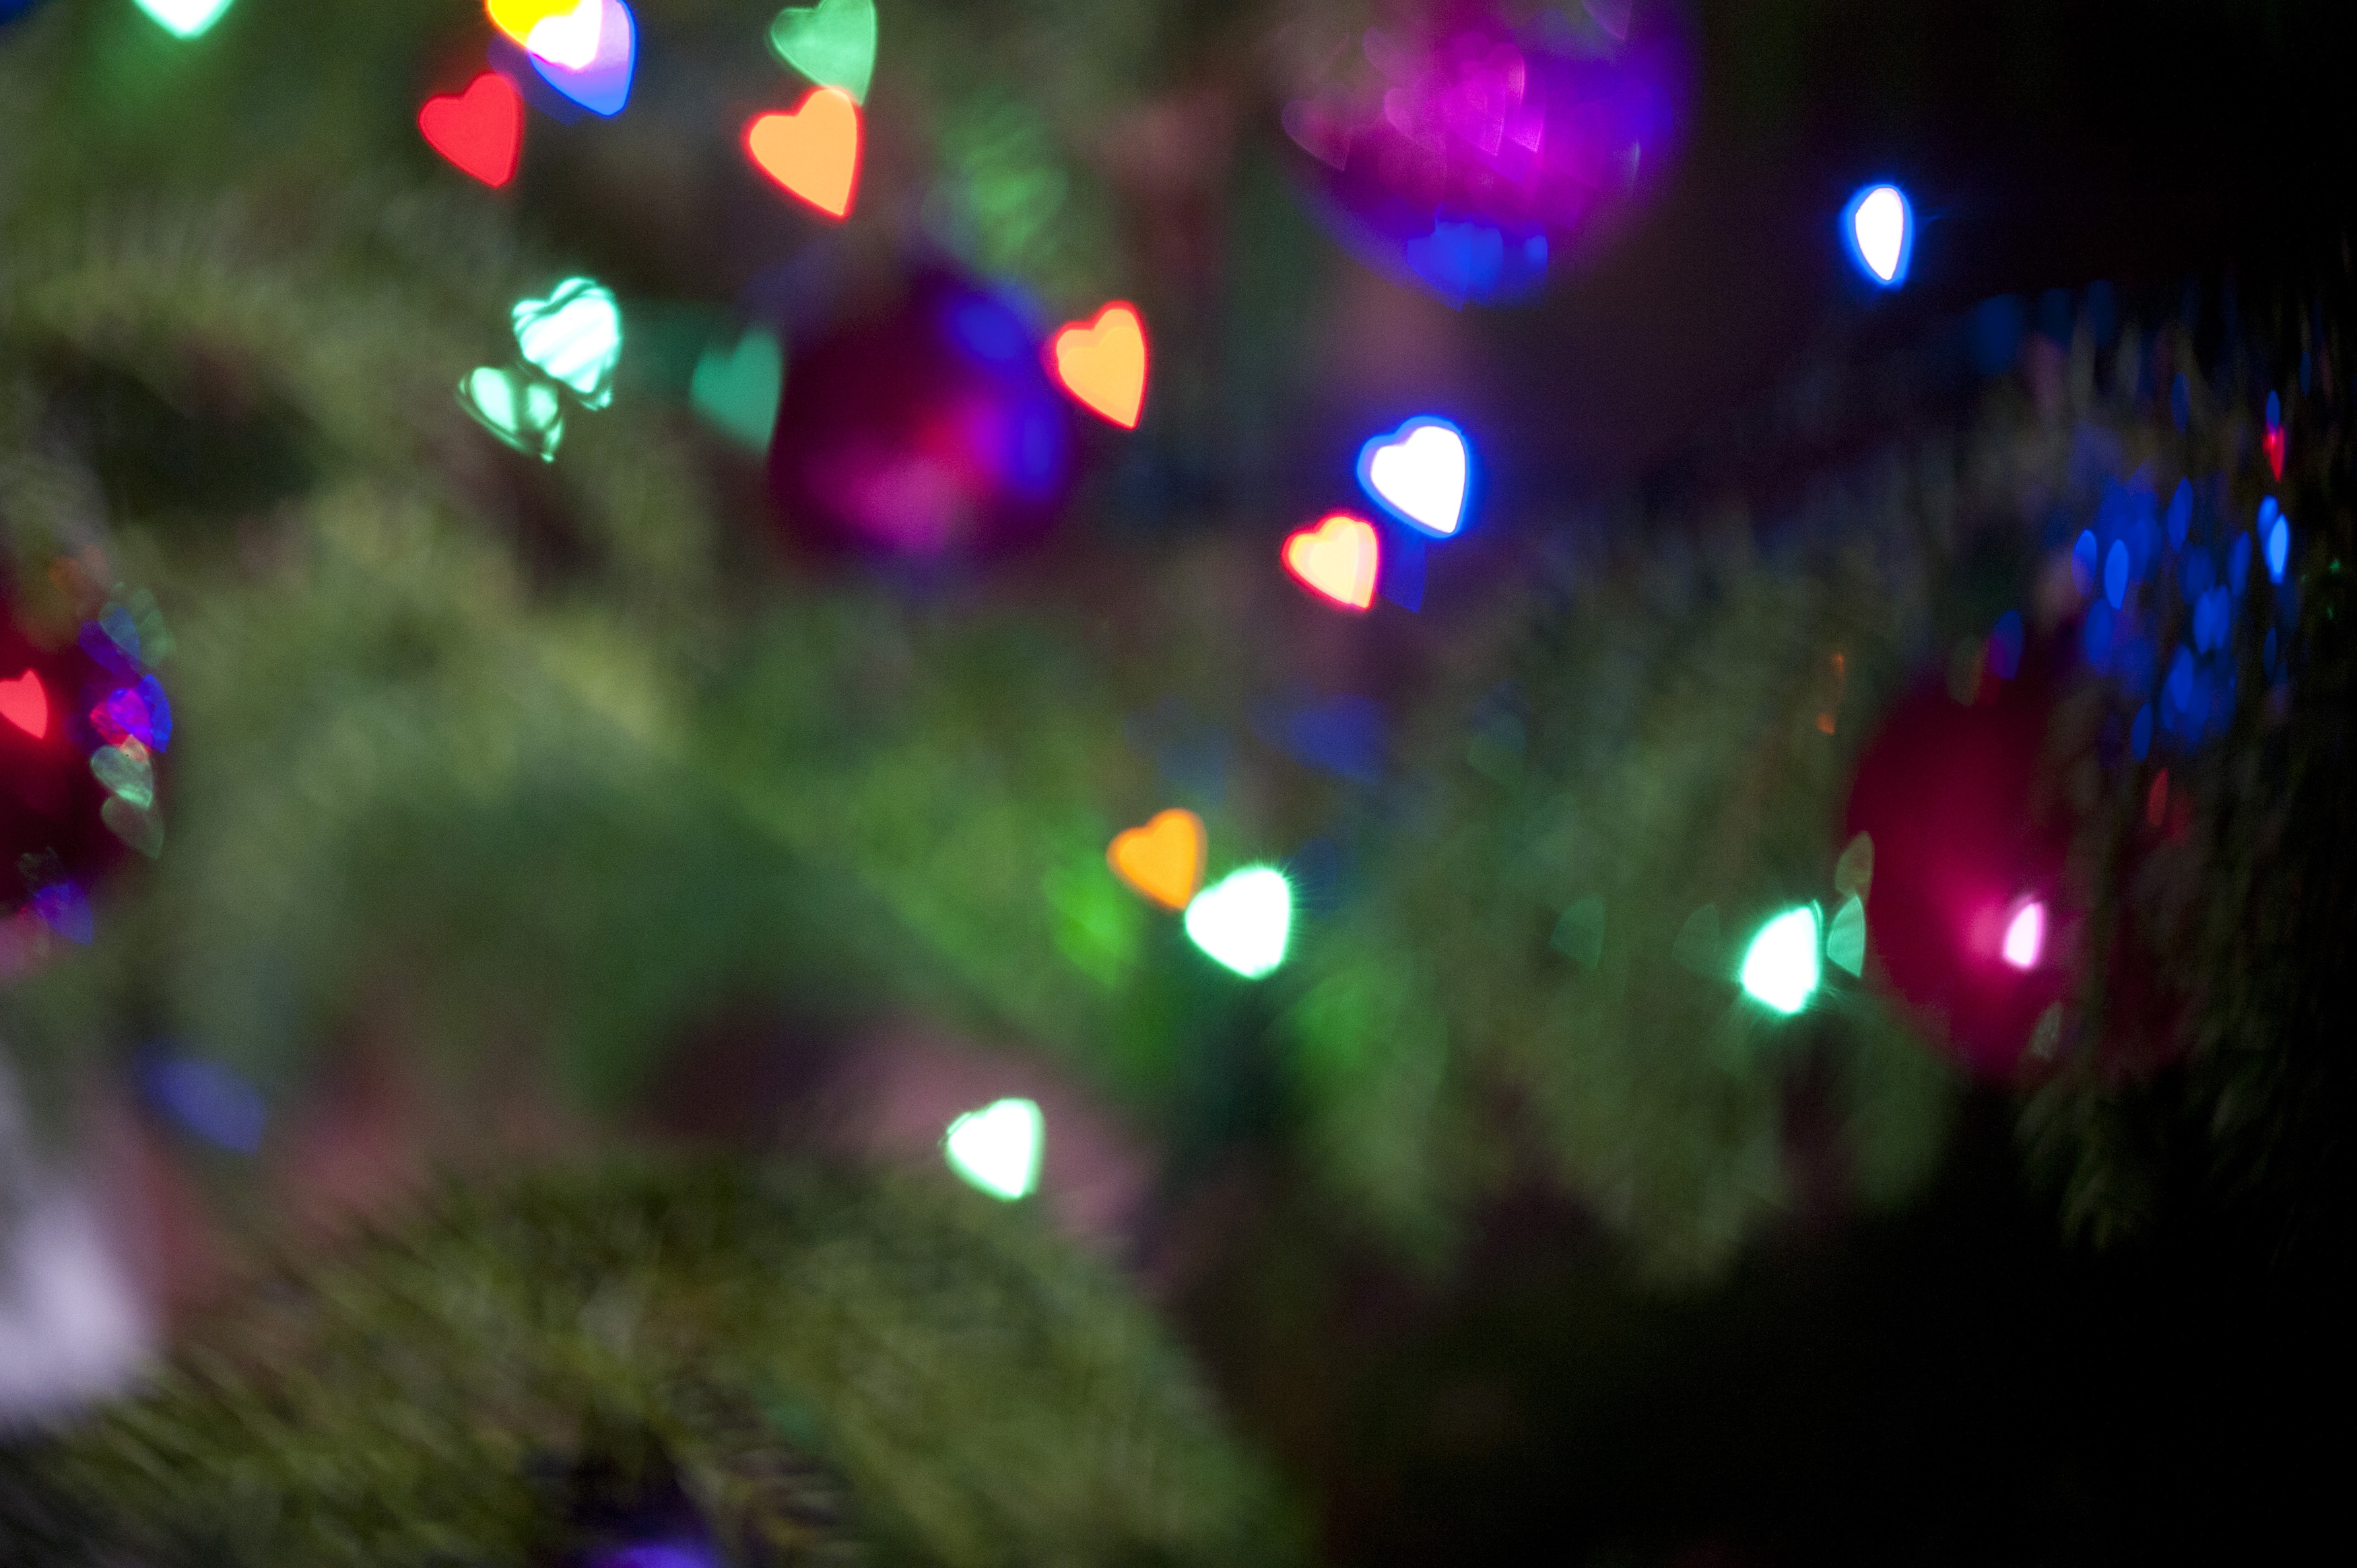 Free Image Of Christmas Tree Ornated With Heart Shaped Lights - Christmas Tree Shaped Lights